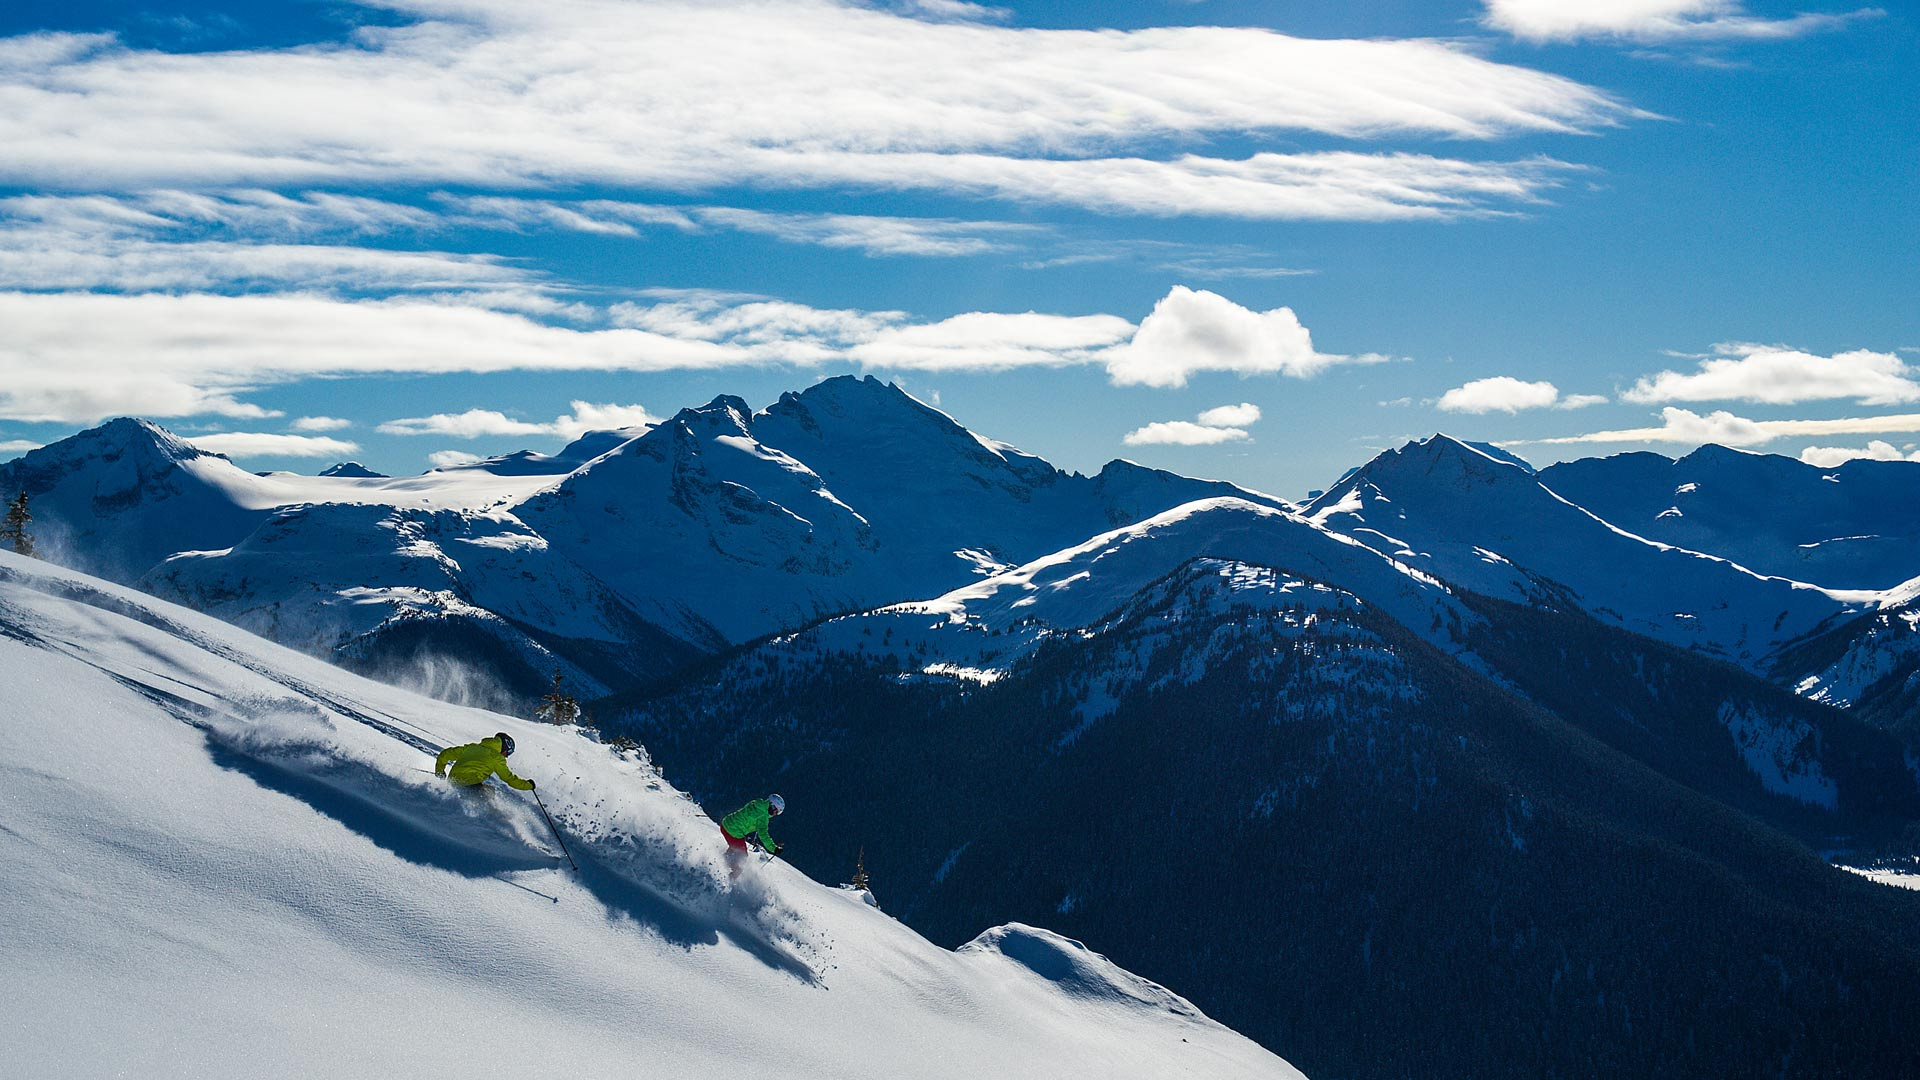 Whistler Blackcomb / Eric Berger